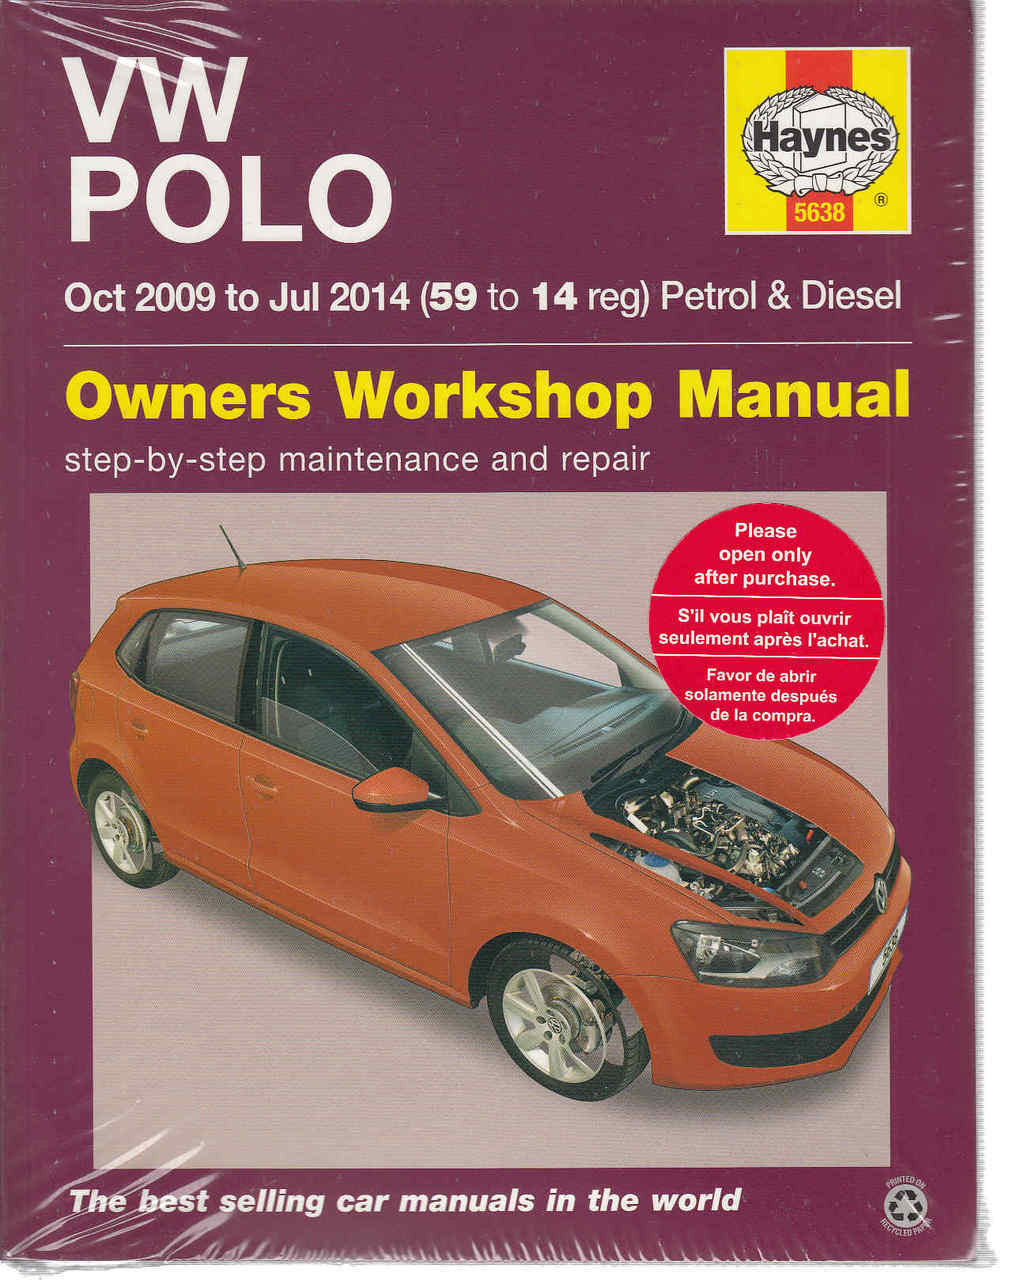 volkswagen polo 2009 2014 petrol diesel owners workshop manual rh automotobookshop com au vw polo workshop manual free vw polo owners workshop manual